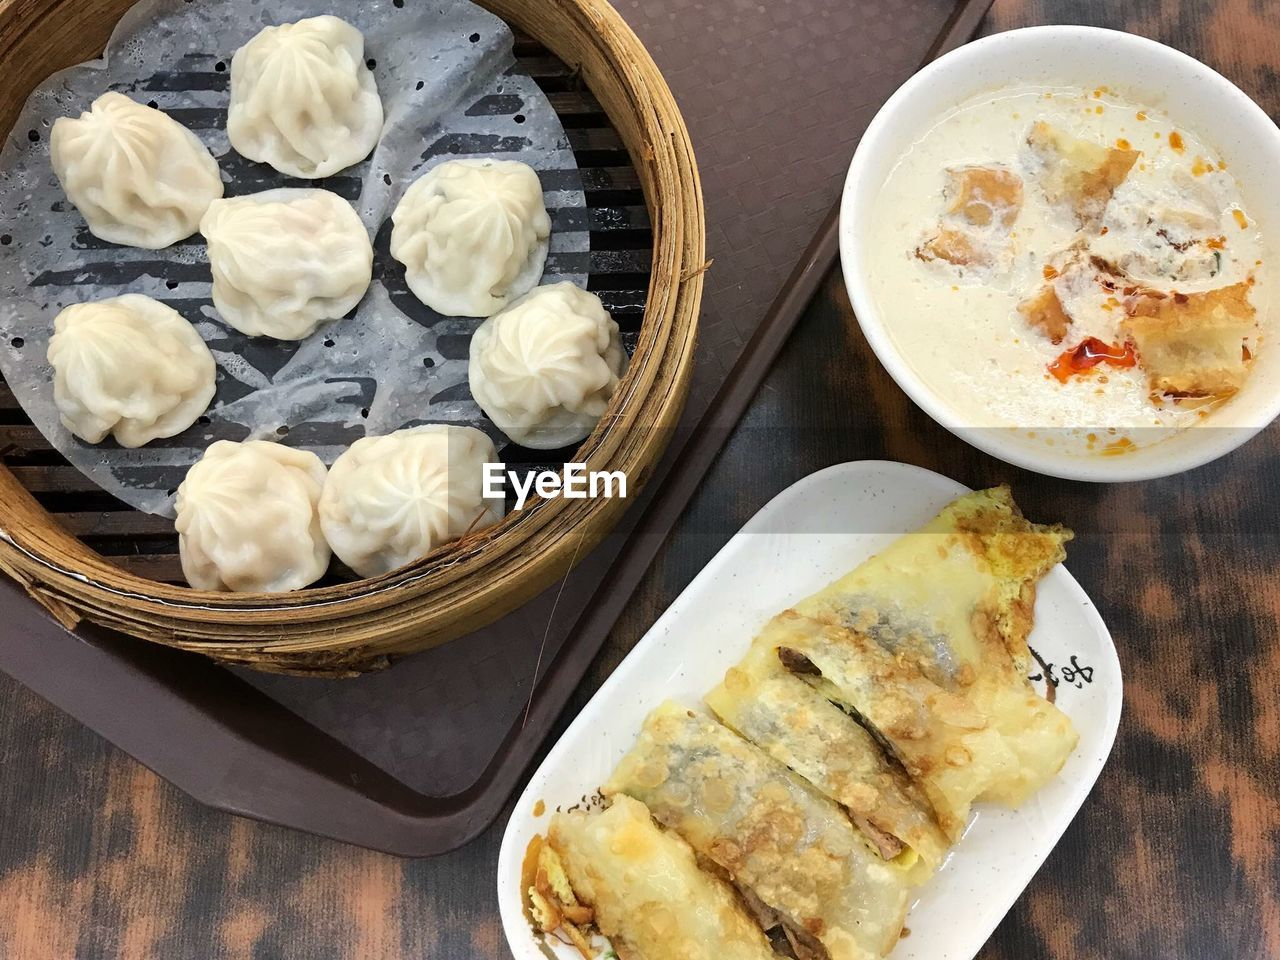 food, food and drink, freshness, ready-to-eat, table, healthy eating, wellbeing, still life, dumpling, high angle view, indoors, plate, no people, asian food, bowl, serving size, container, bread, chinese dumpling, chinese food, meal, temptation, tray, breakfast, steamed